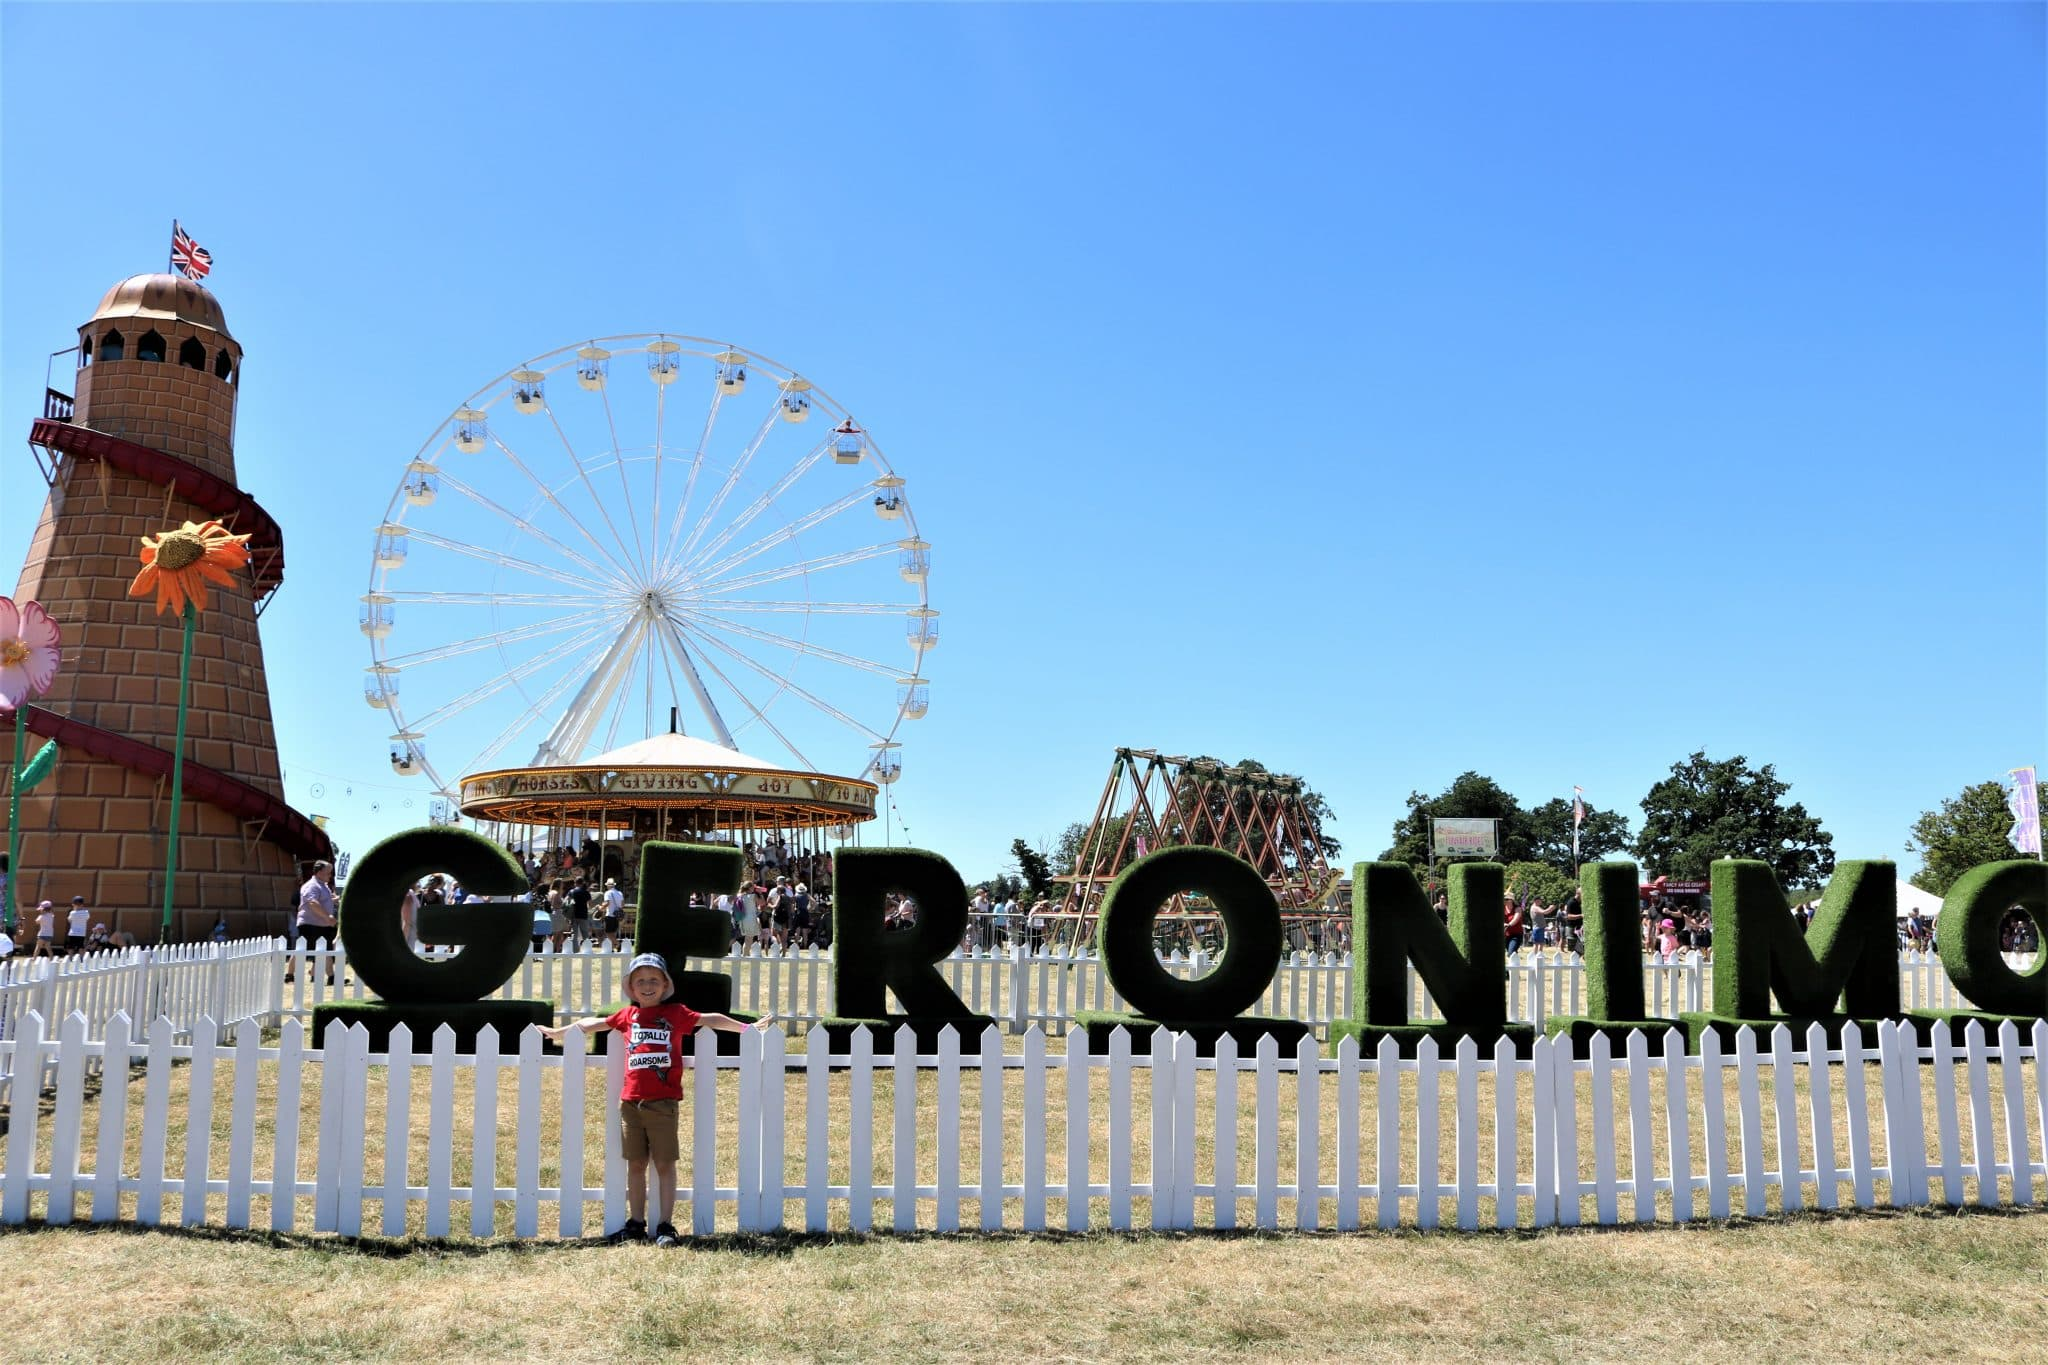 Geronimo Festival 2018, Knebworth House